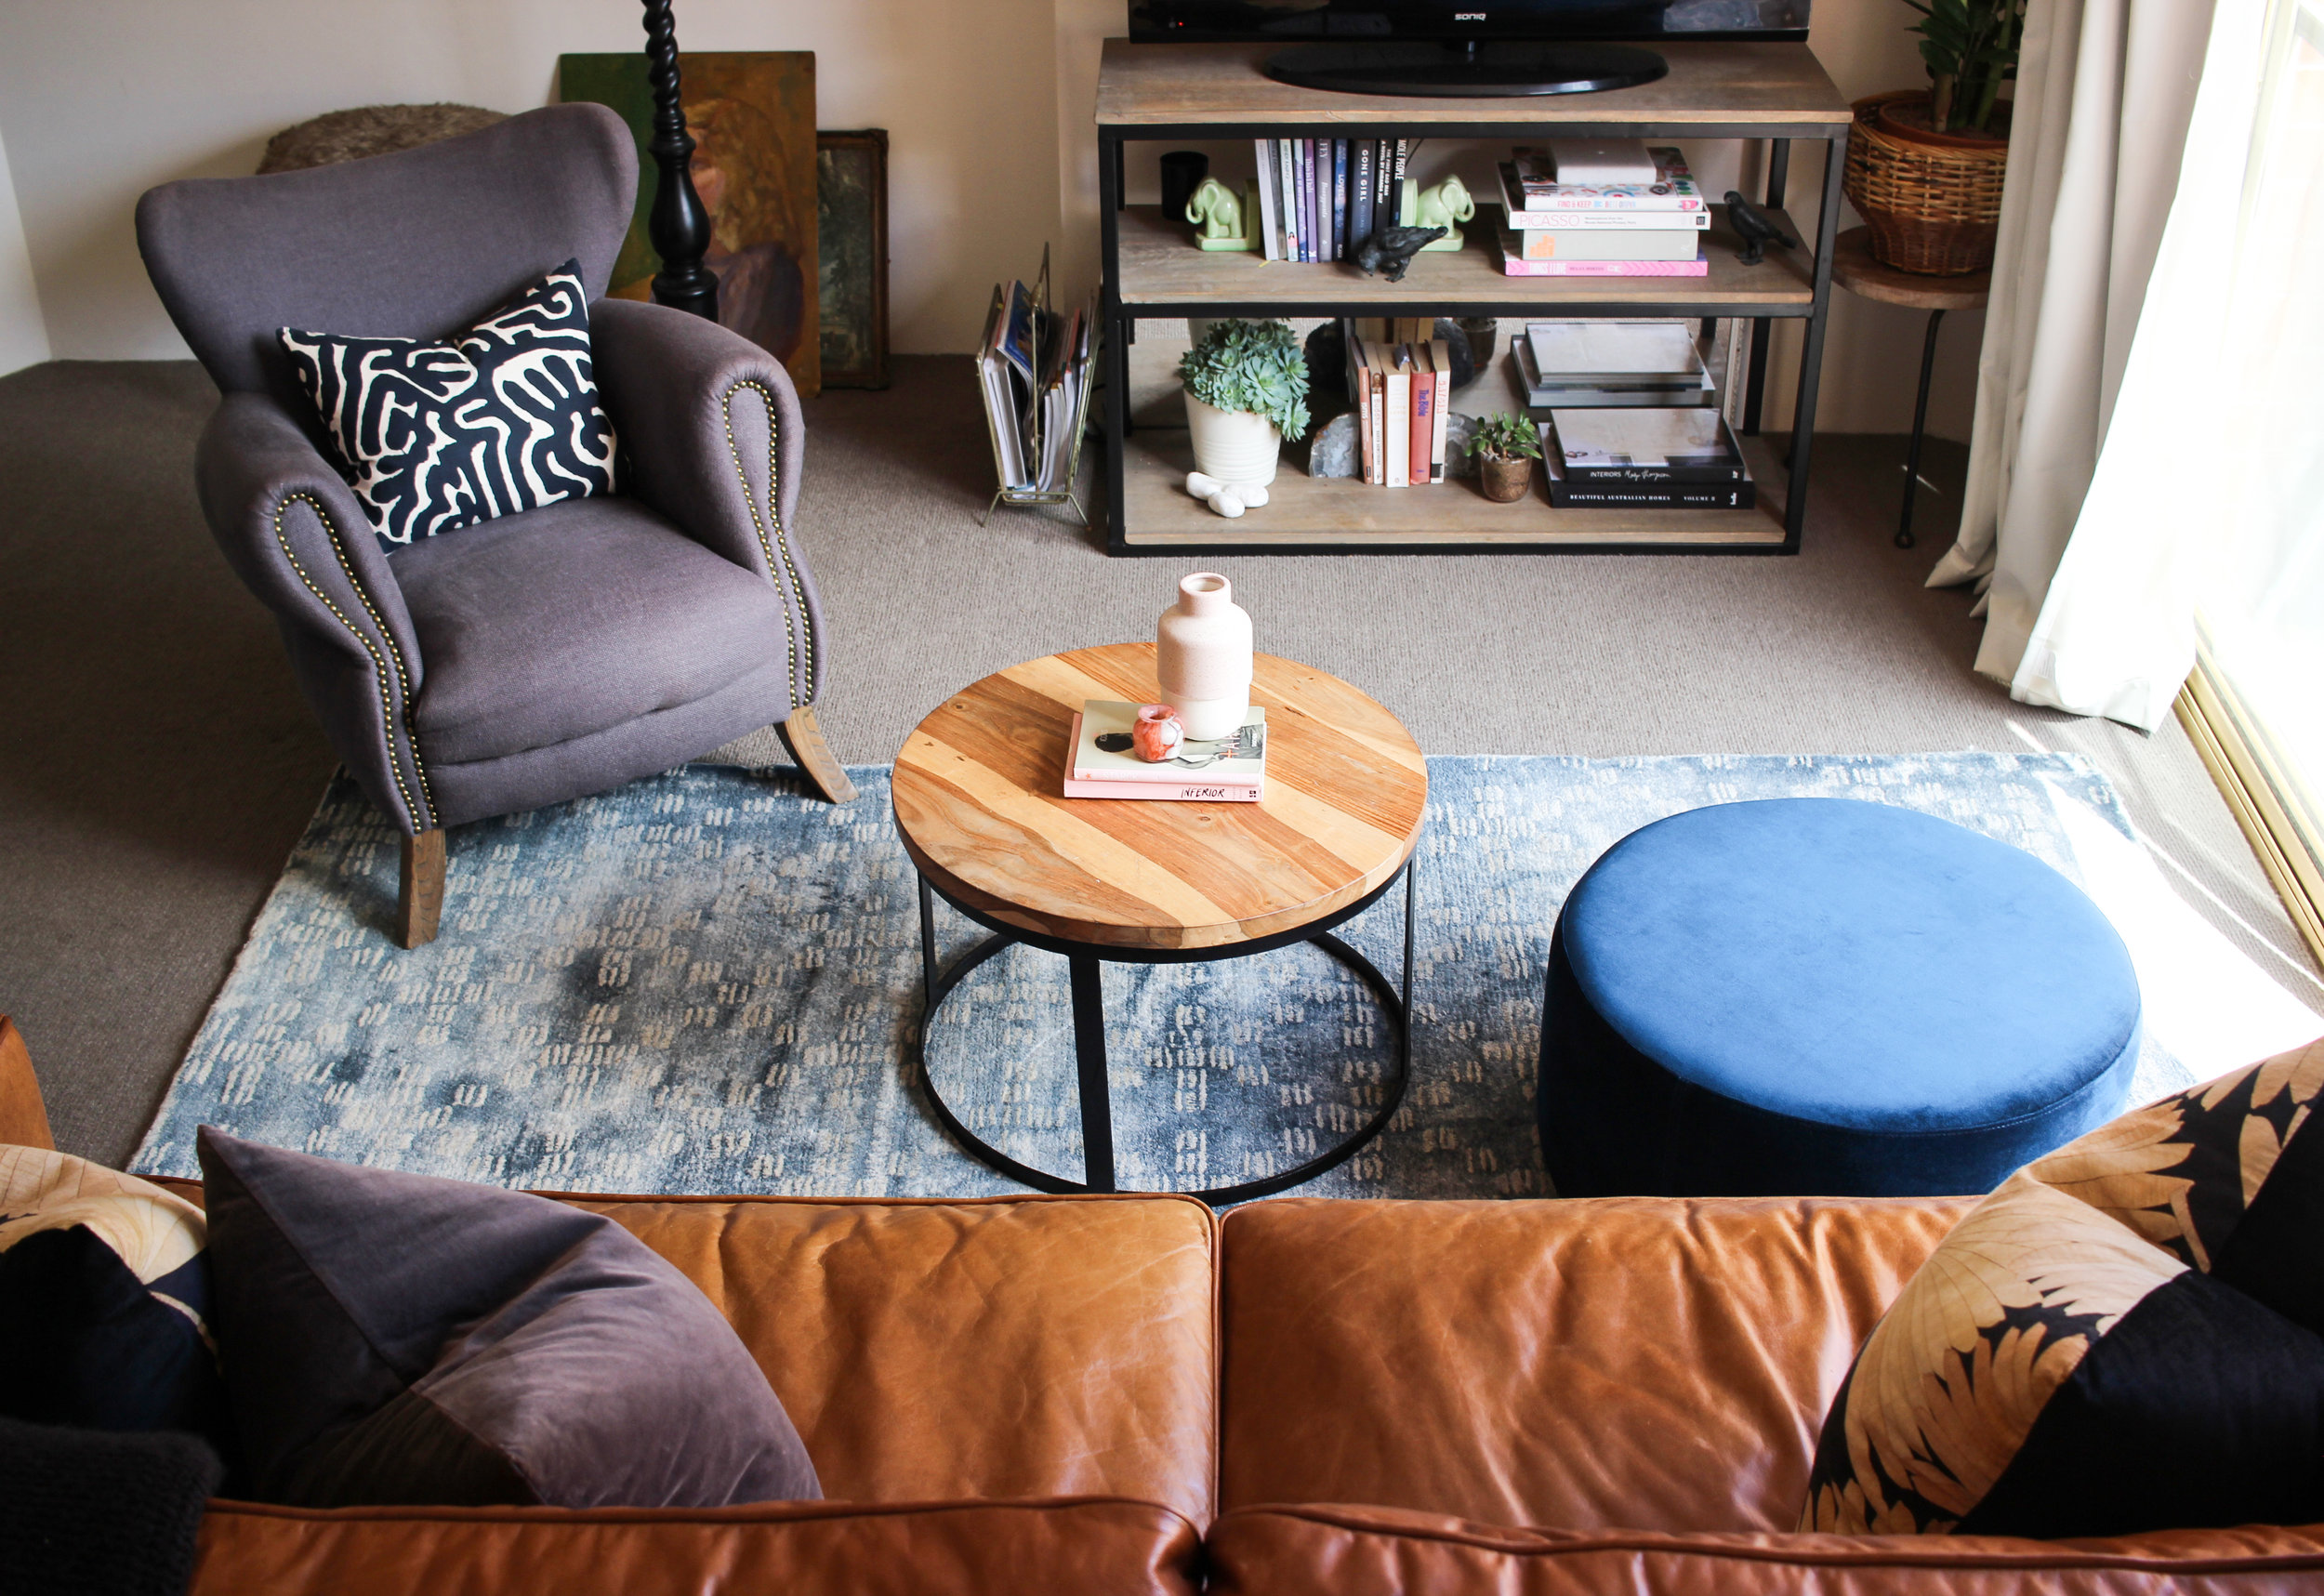 PULL YOUR FURNITURE IN TOGETHER TO MAKE EACH SPACE CLEARLY GROUPED.